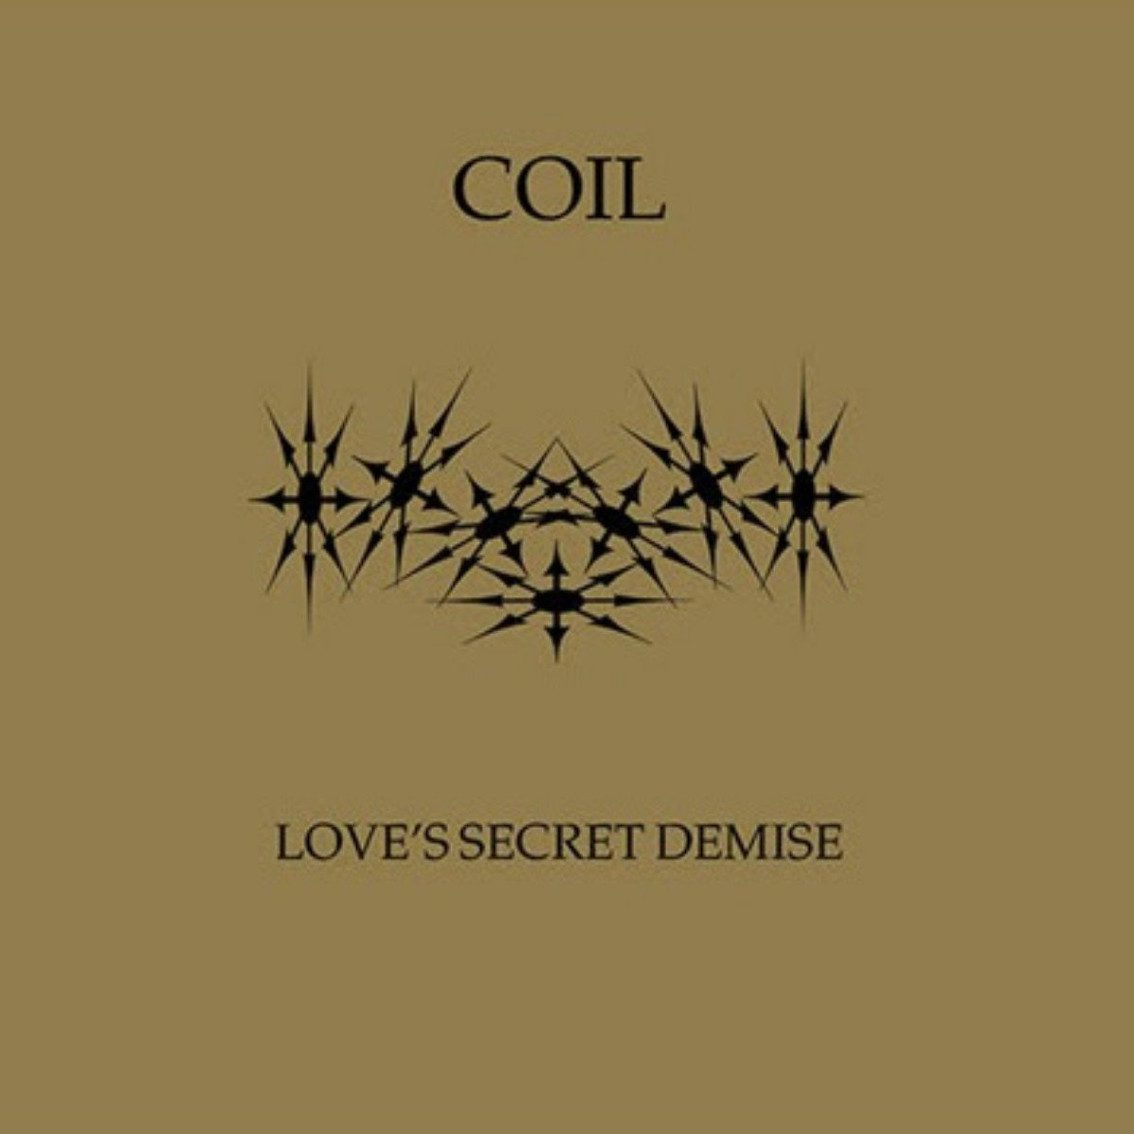 Coil's'Love's Secret Demise' hits the CD format - order info incuded